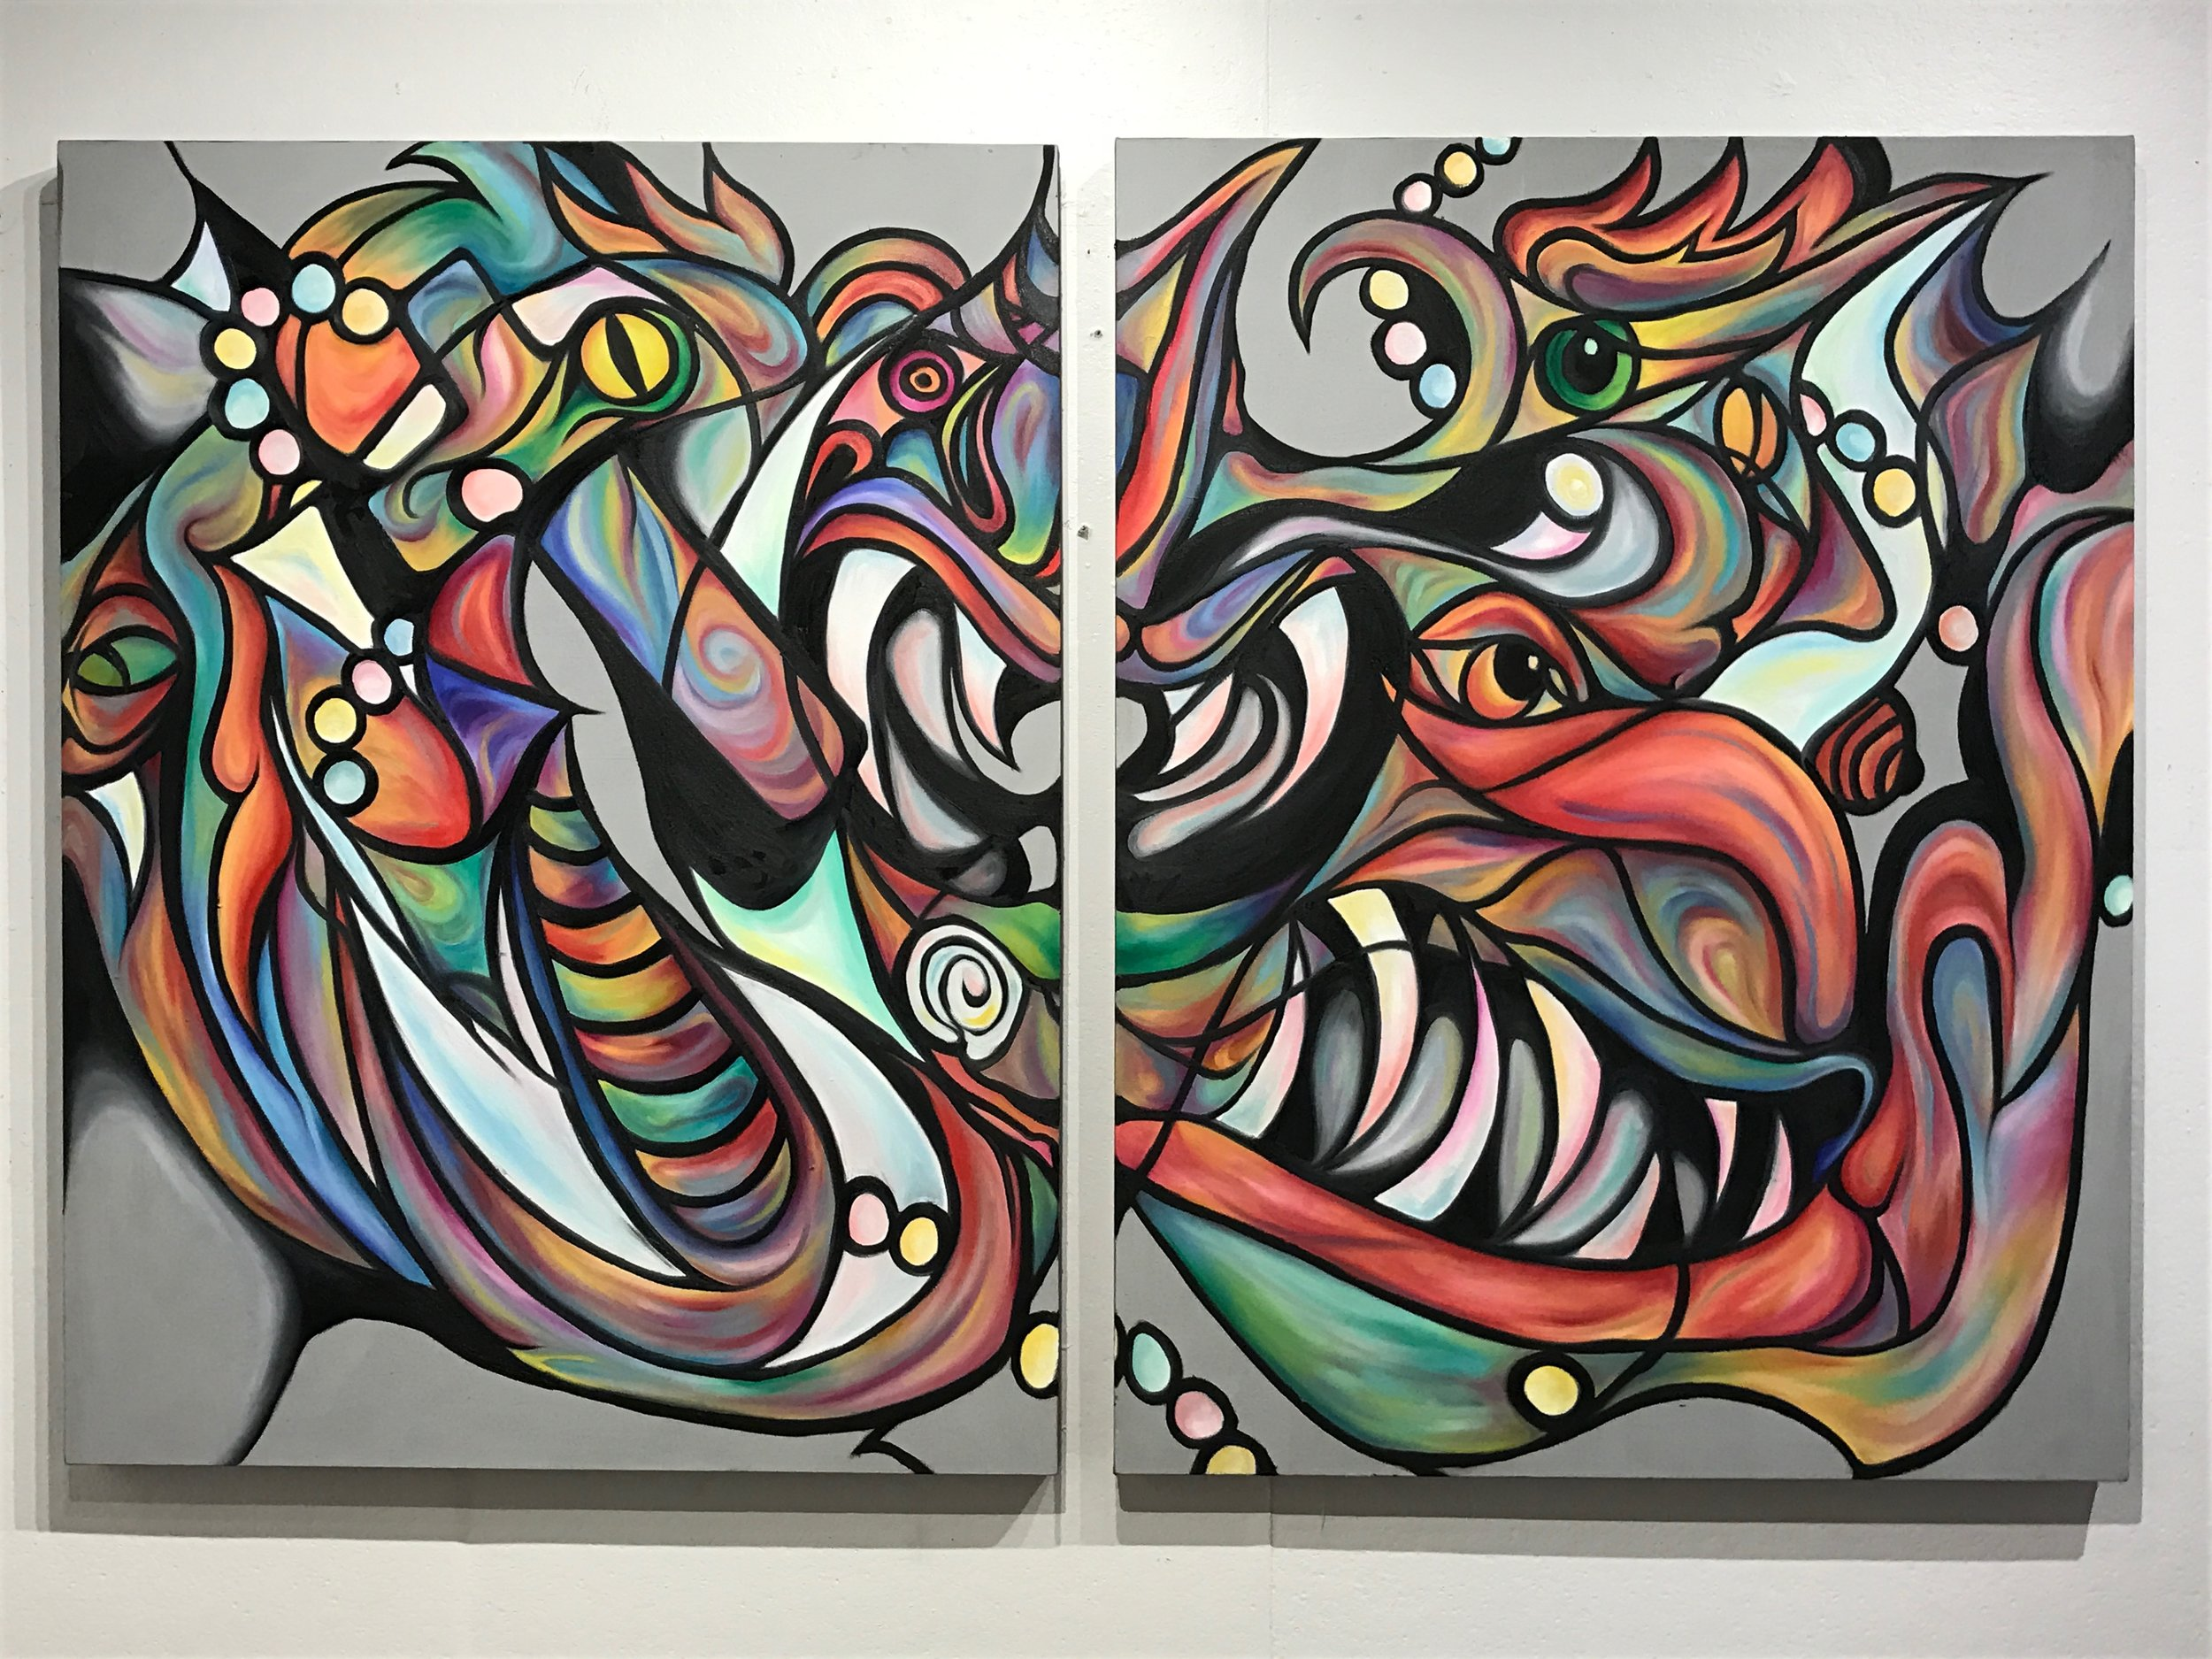 Dancing Devils , 2017  Oil on canvas, 48 x 36 in. (each canvas)